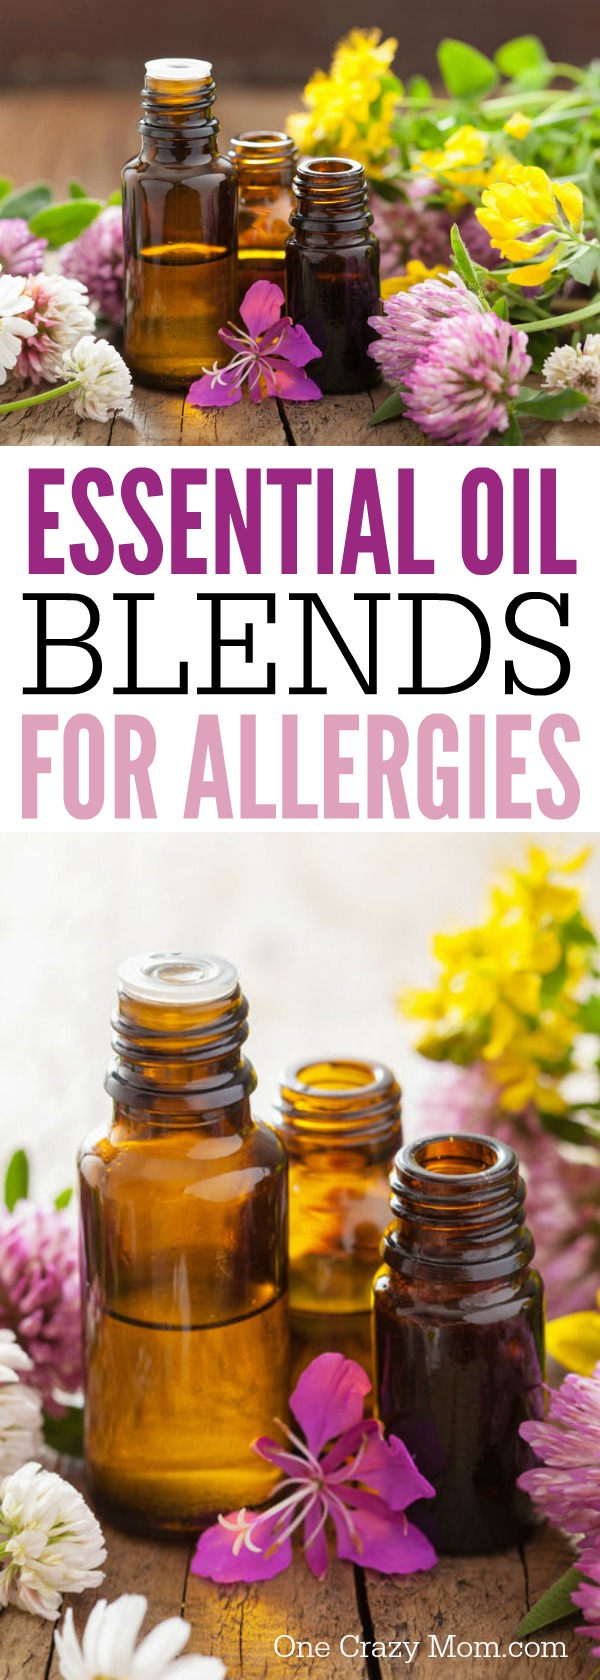 Here are 6 of the best essential oils for allergies. Try one of these essential oils for allergies. These are the best essential oil blends for allergies.